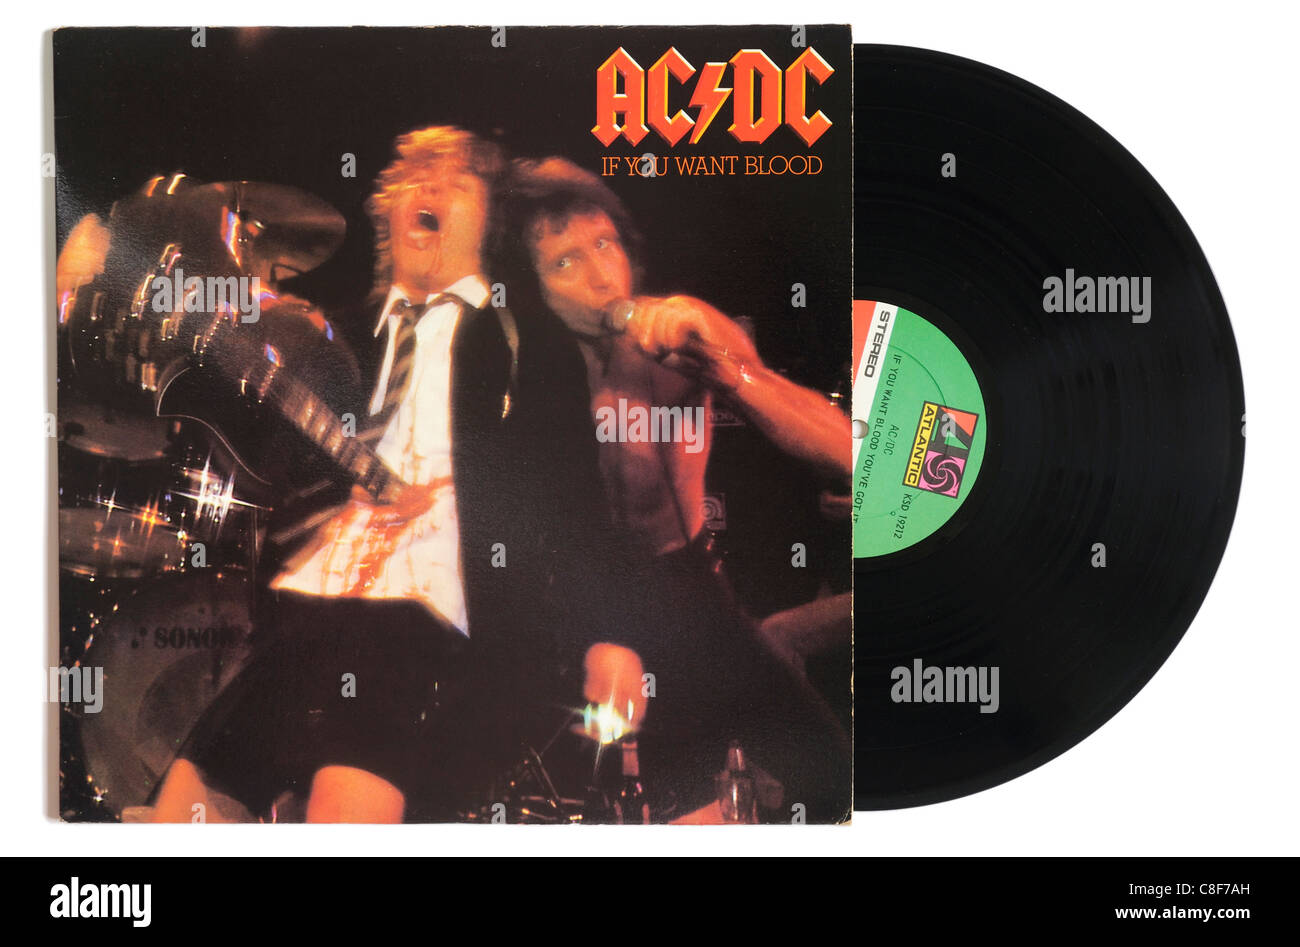 AC/DC If You Want Blood album - Stock Image